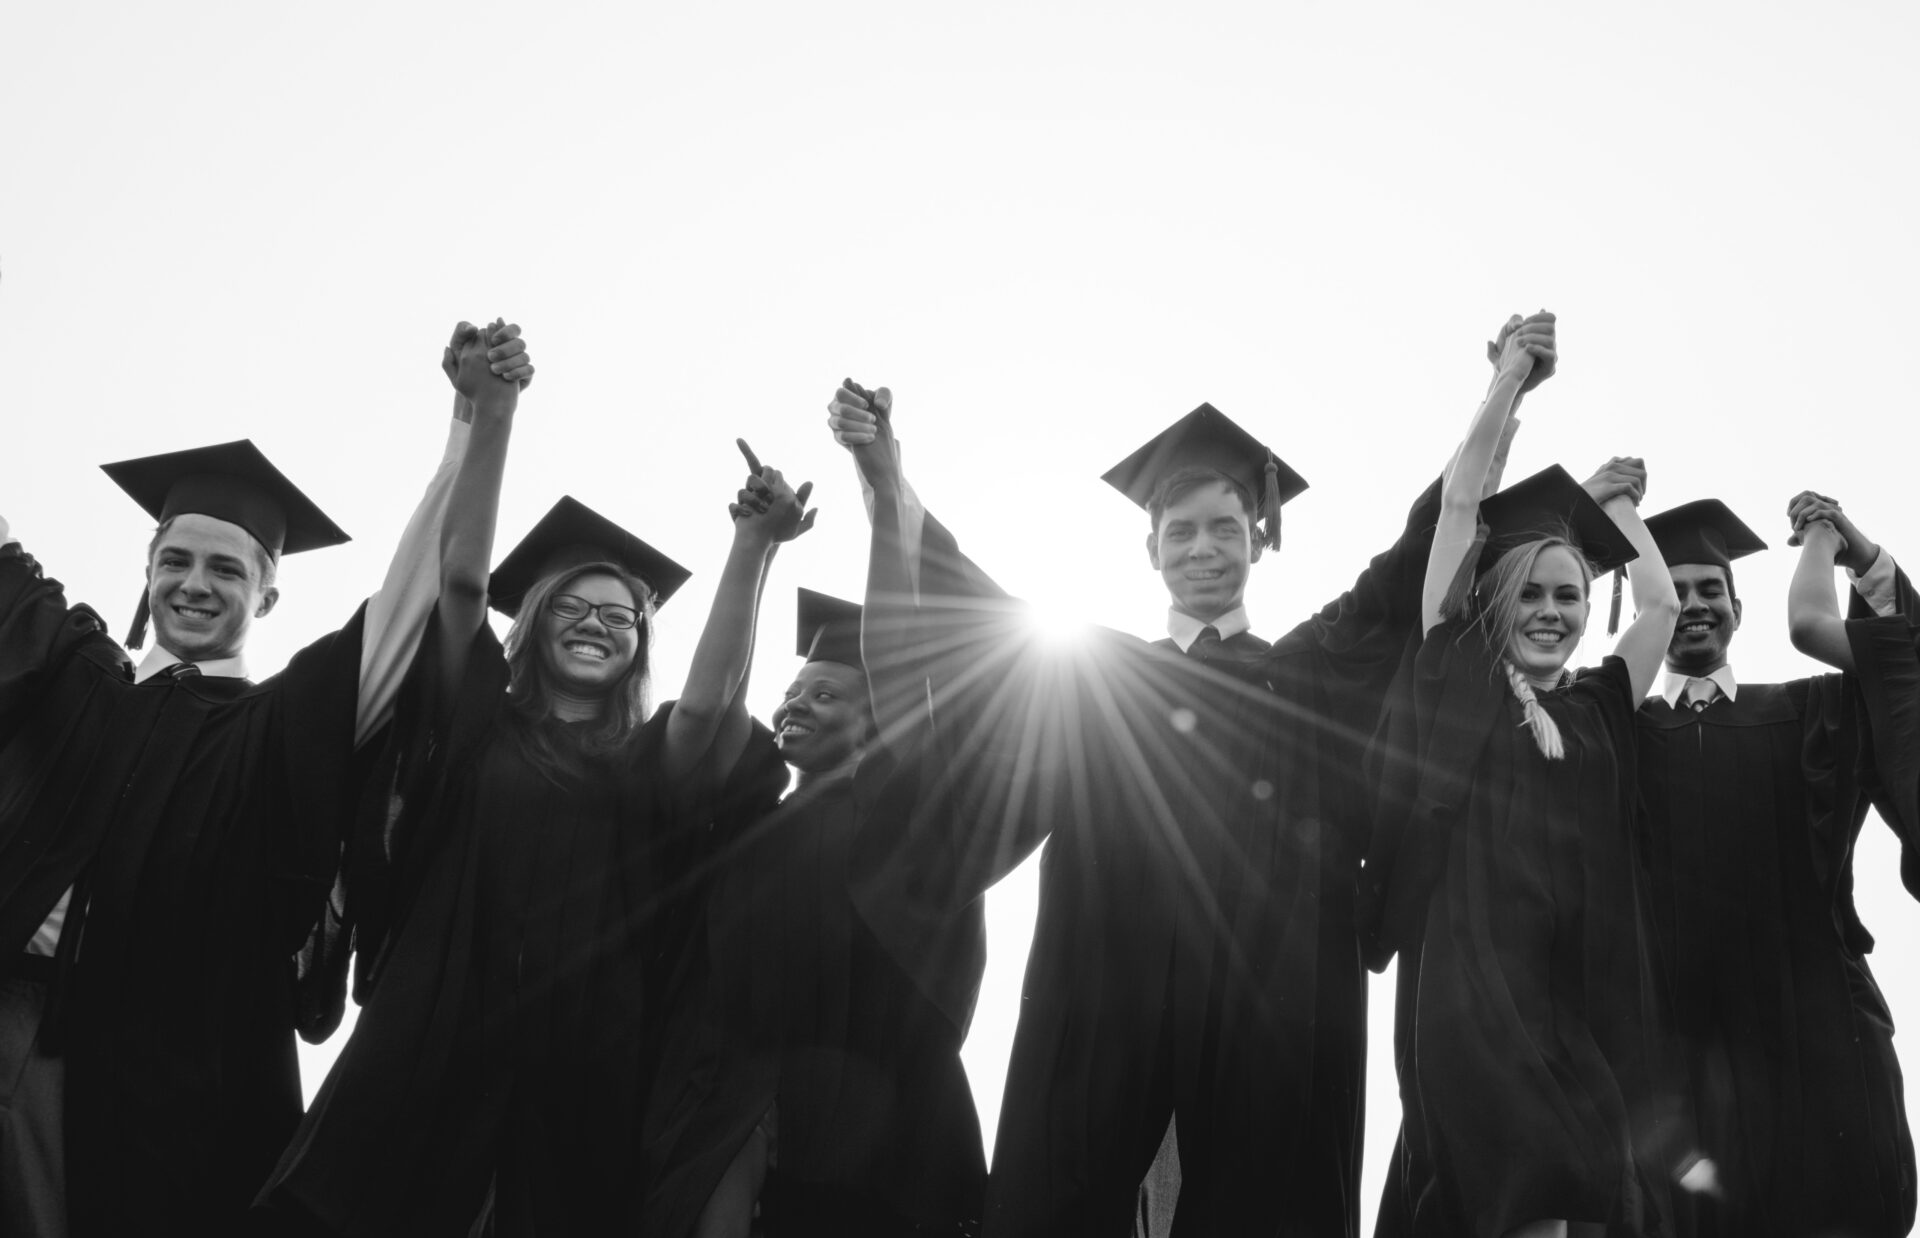 Black and white image of graduation students holding hands and smiling in their graduation gowns